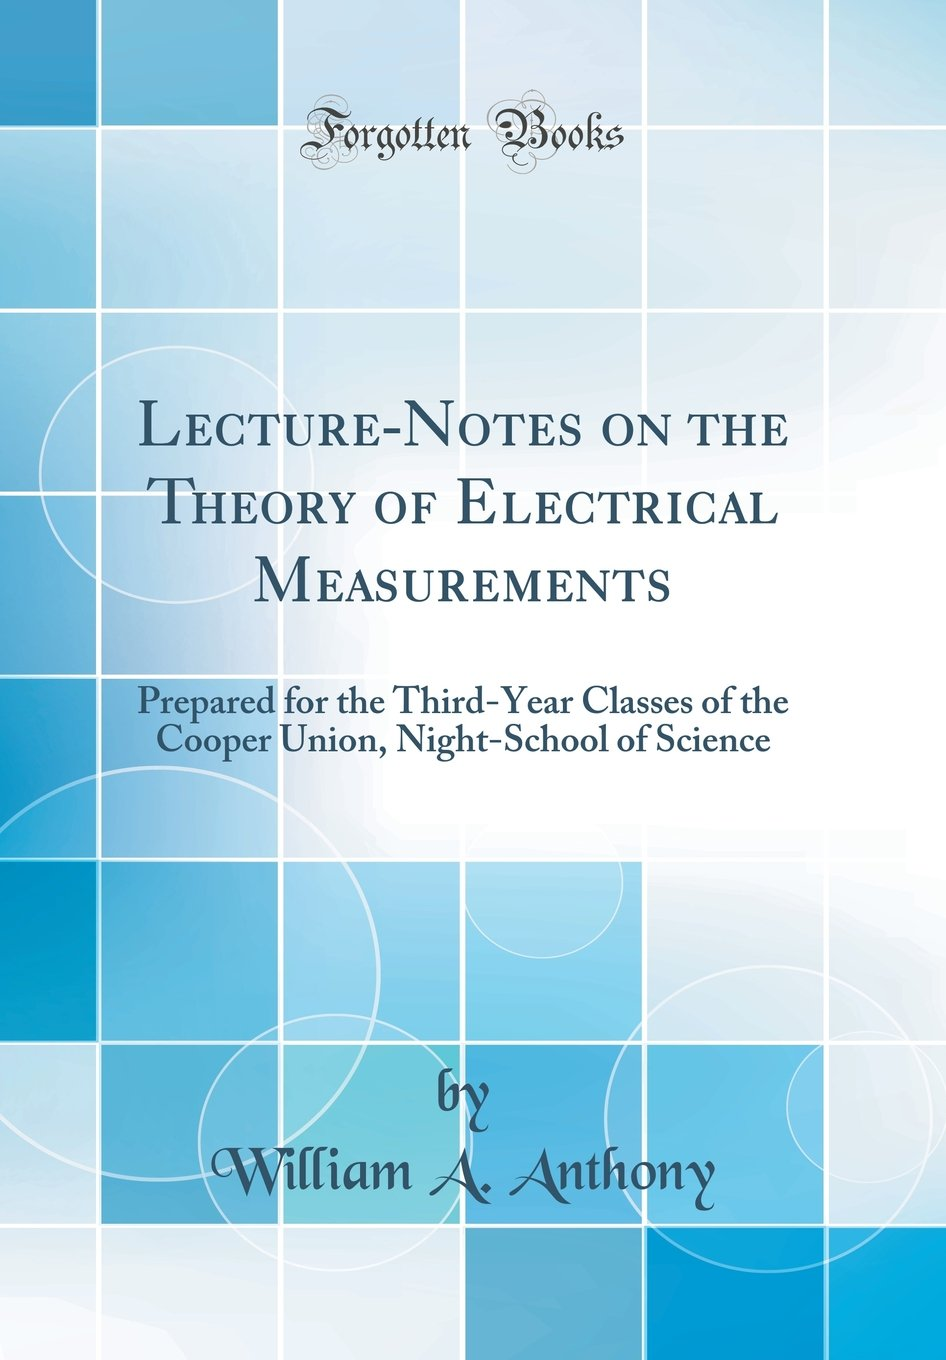 Read Online Lecture-Notes on the Theory of Electrical Measurements: Prepared for the Third-Year Classes of the Cooper Union, Night-School of Science (Classic Reprint) PDF